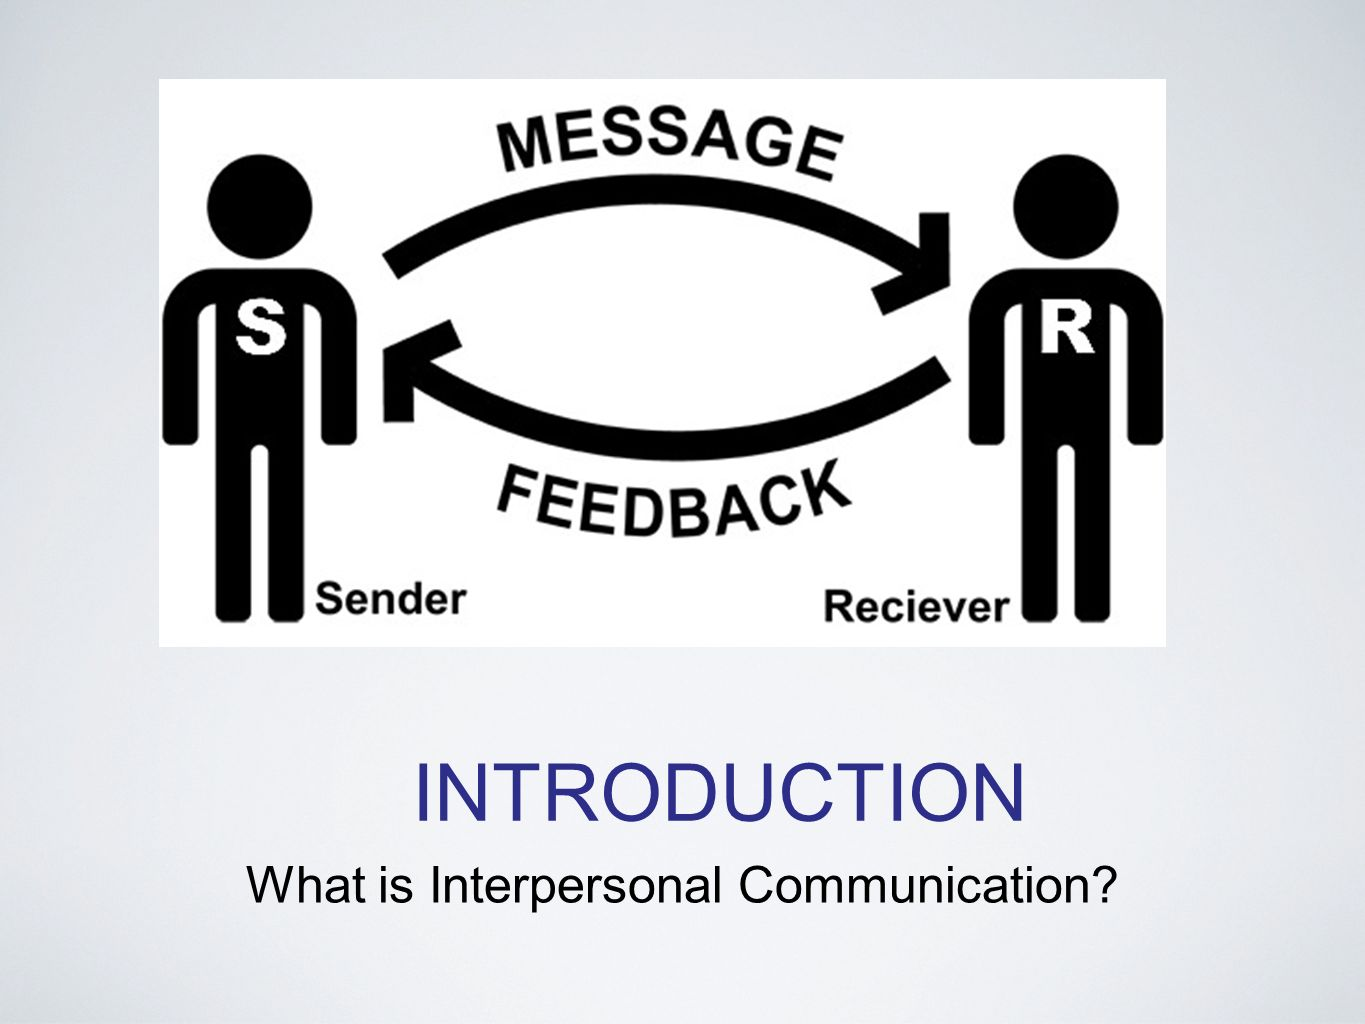 INTRODUCTION What is Interpersonal Communication?